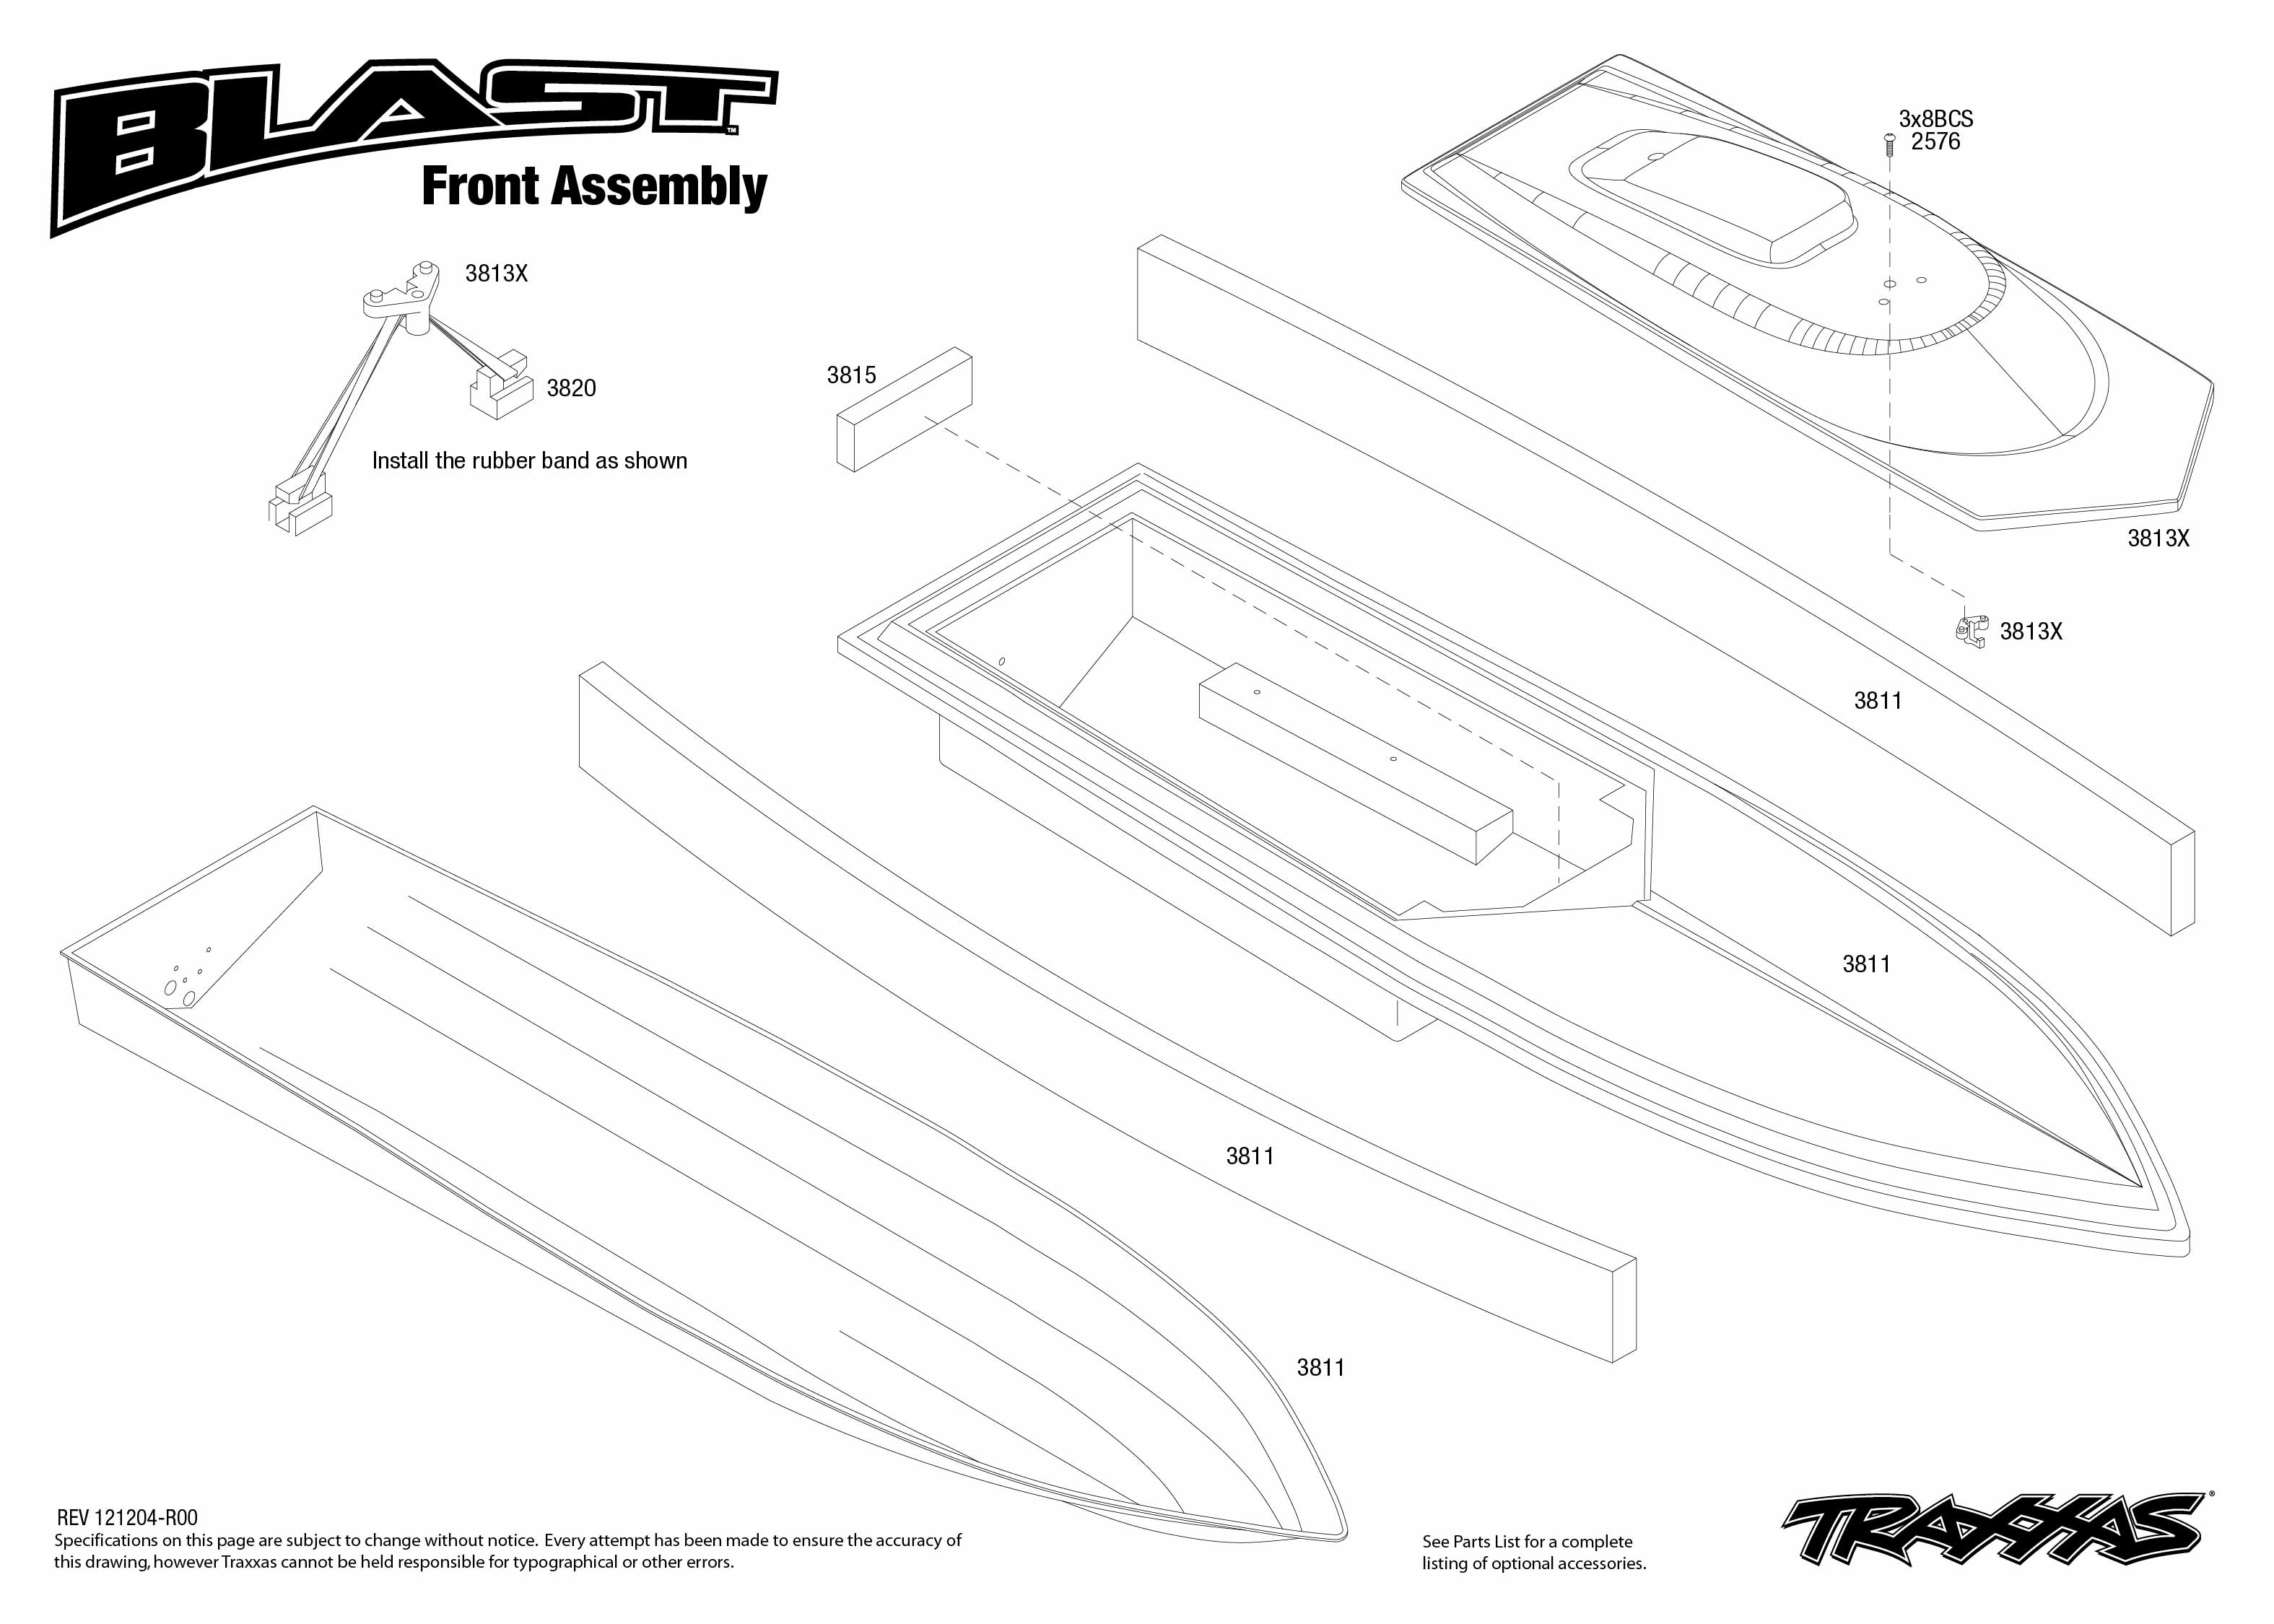 Traxxas Blast Electric Race Boat